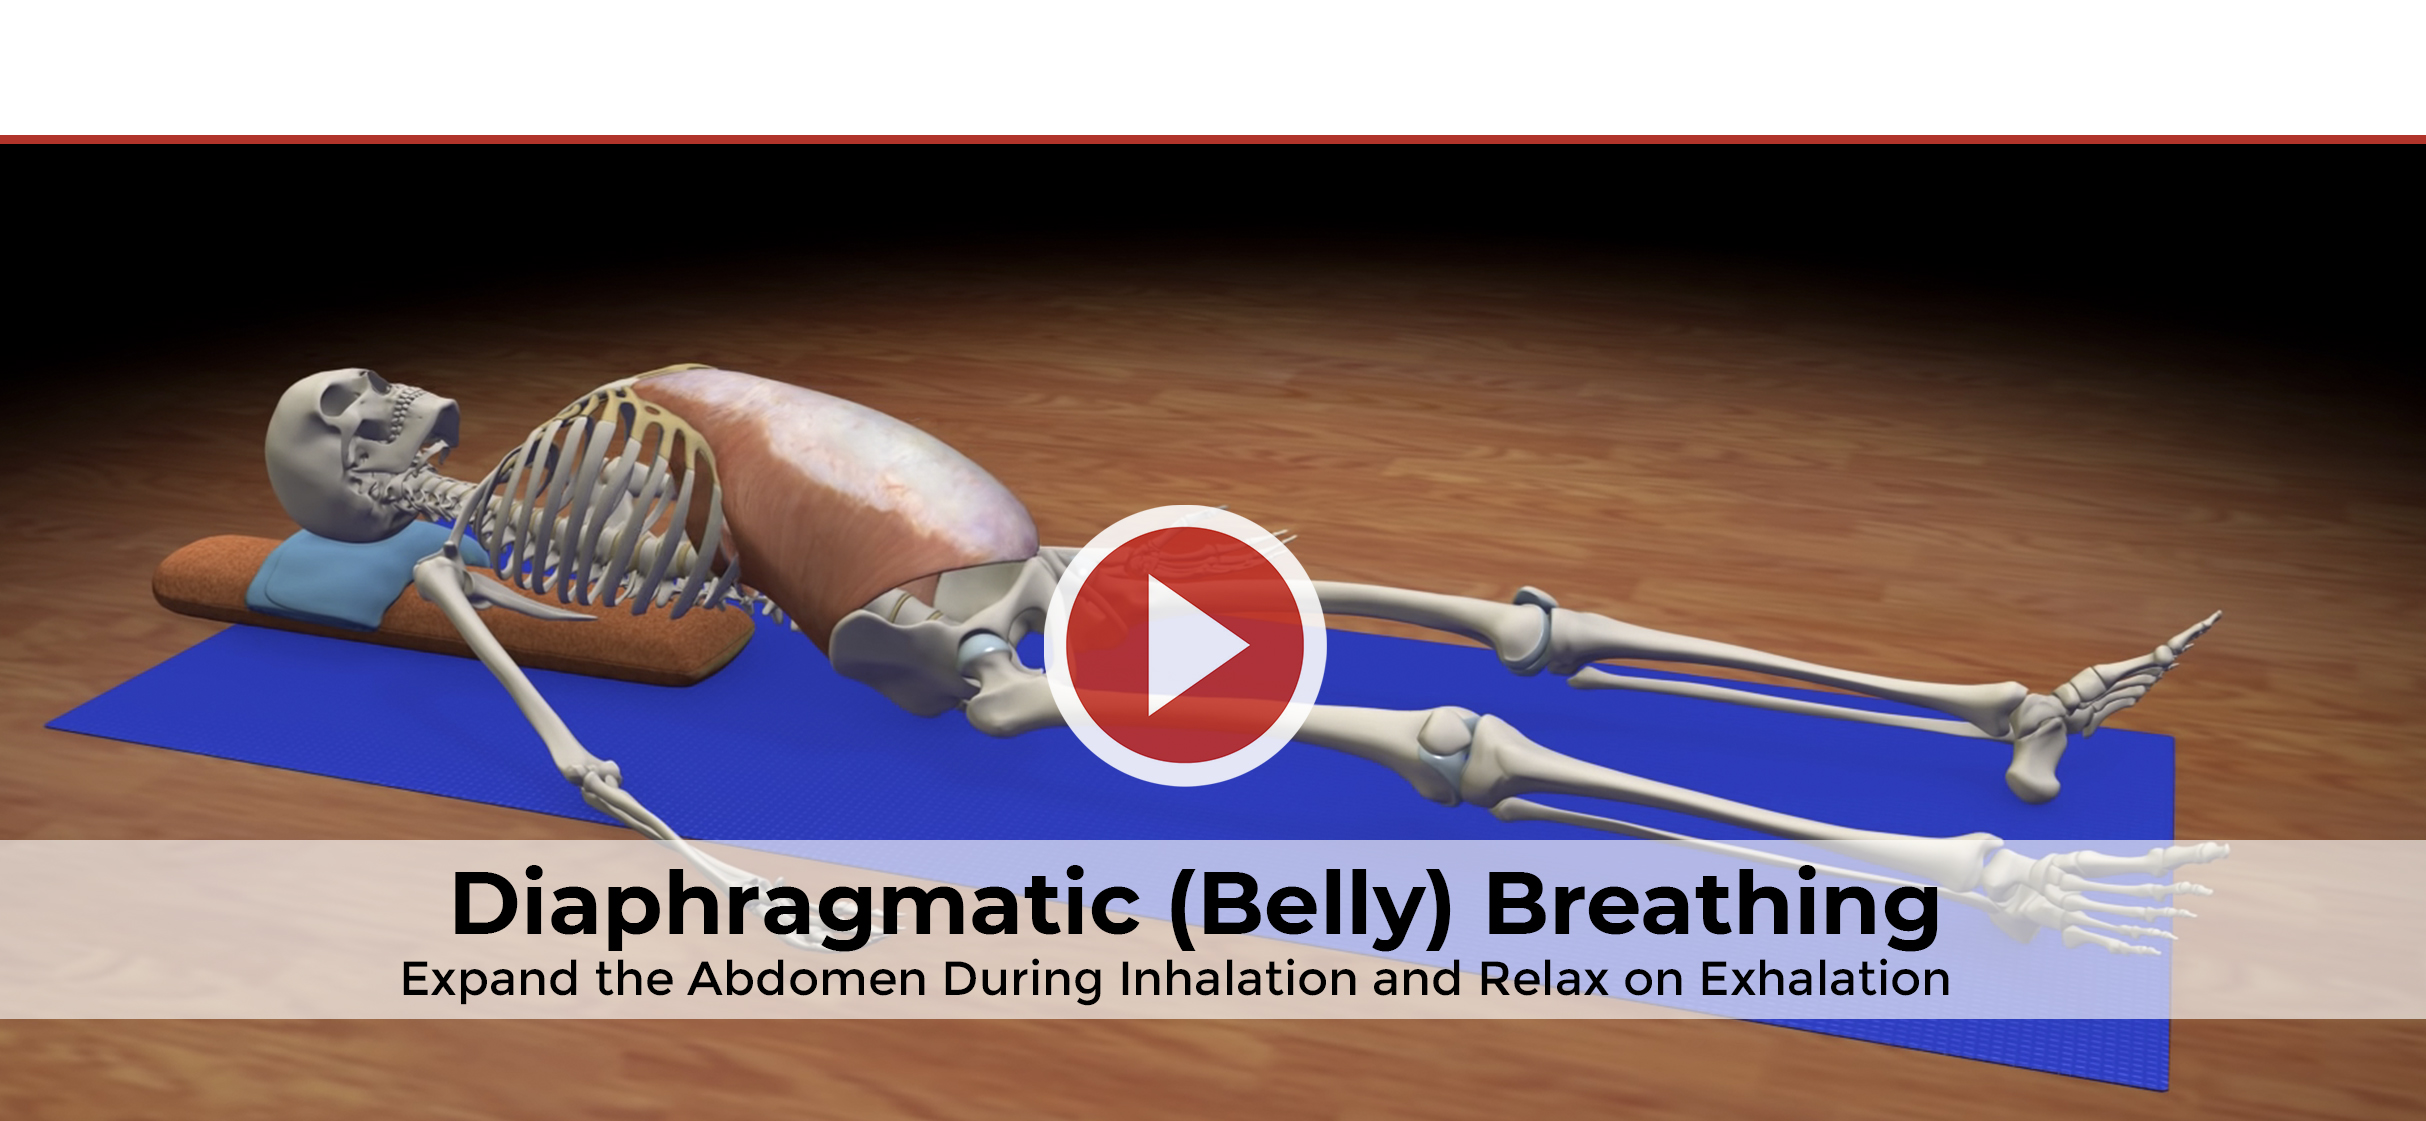 Bhanda Diaphragmatic (Belly) Breathing